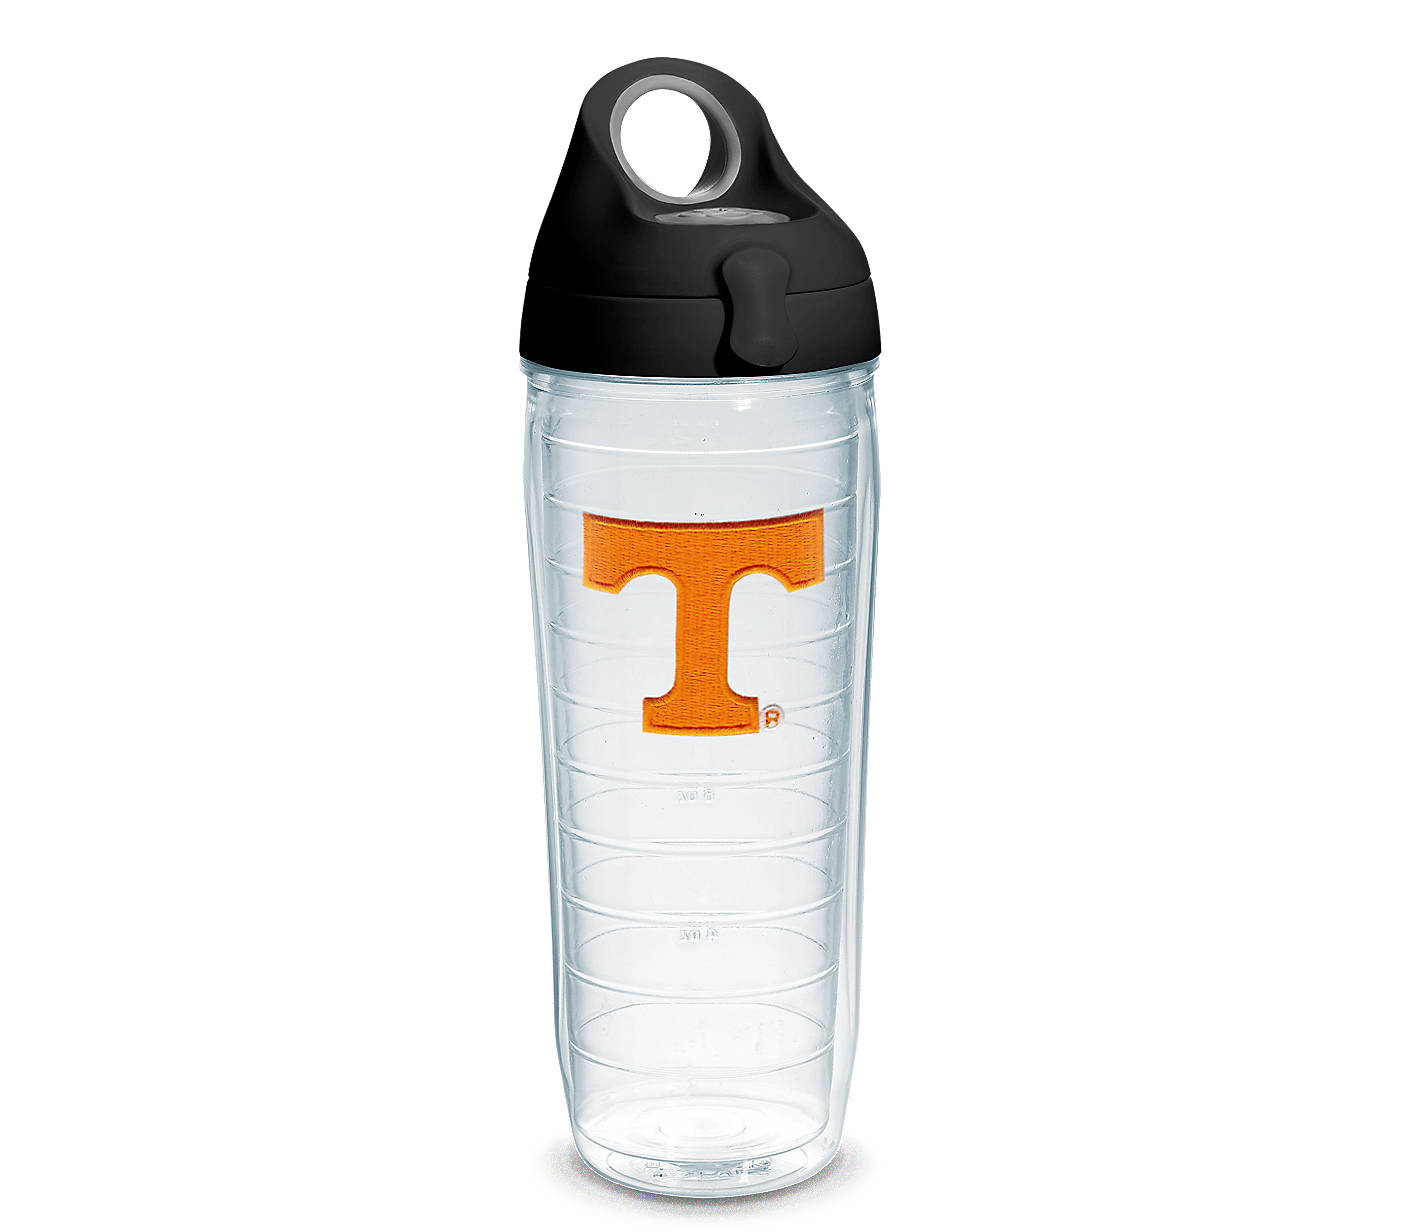 TN-waterbottle-new